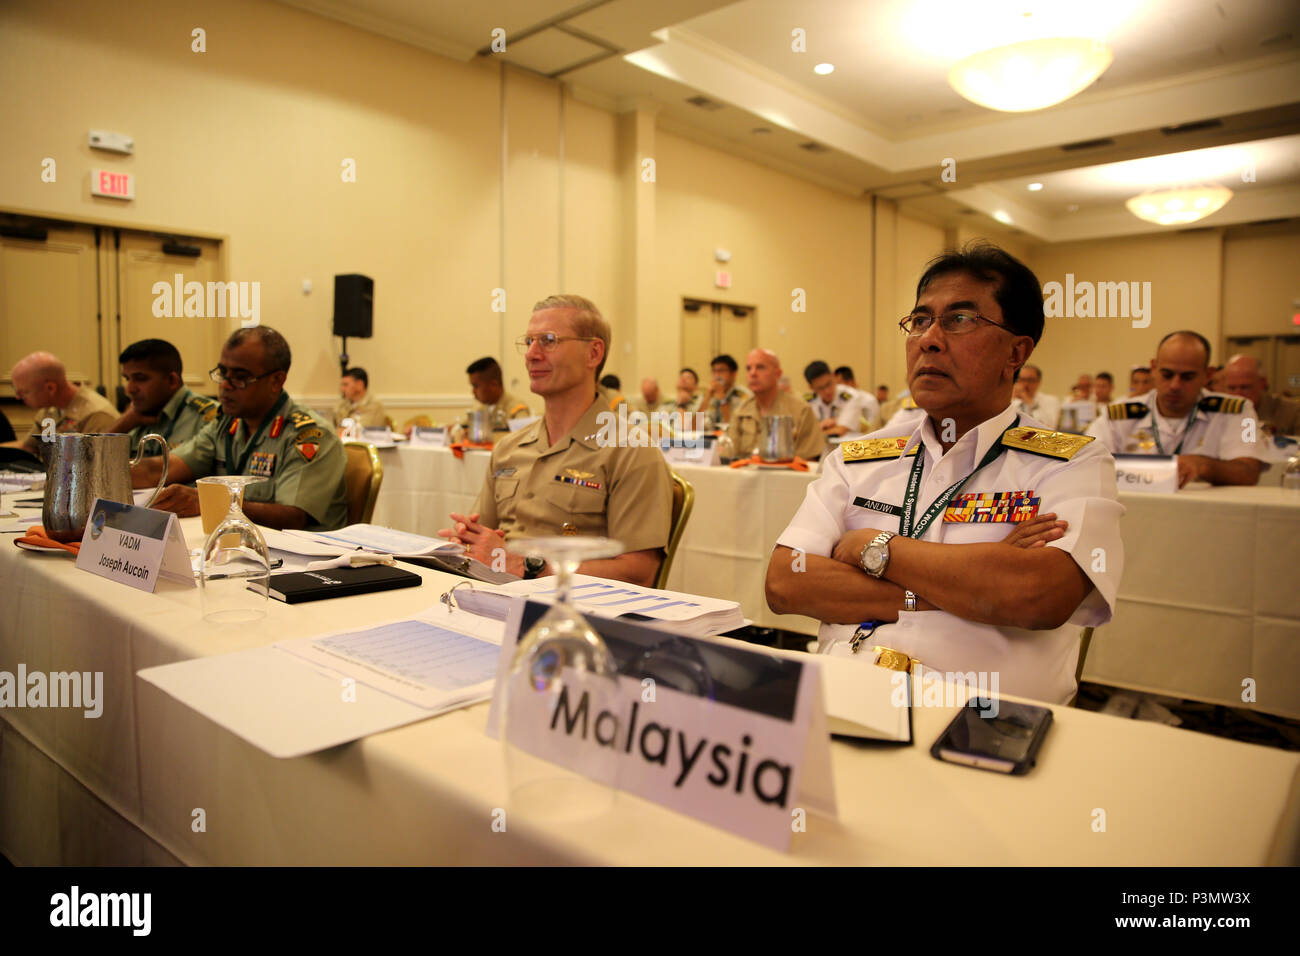 SAN DIEGO Calif. - Vice Admiral Dato Anuwi Bin Hassan, the deputy chief of Navy for the Royal Malaysian Navy, takes part in the Pacific Command Amphibious Leaders Symposium 2016 conference July 11, 2016. During the symposium, military services from around the world will come together to build a closer military-to-military bond with one another. Closer bonds between other military facilitate clear lines of communication and foster a spirit of cooperation to meet potential global challenges. (U.S. Marine Corps photo by Cpl. Demetrius Morgan/ RELEASED) Stock Photo